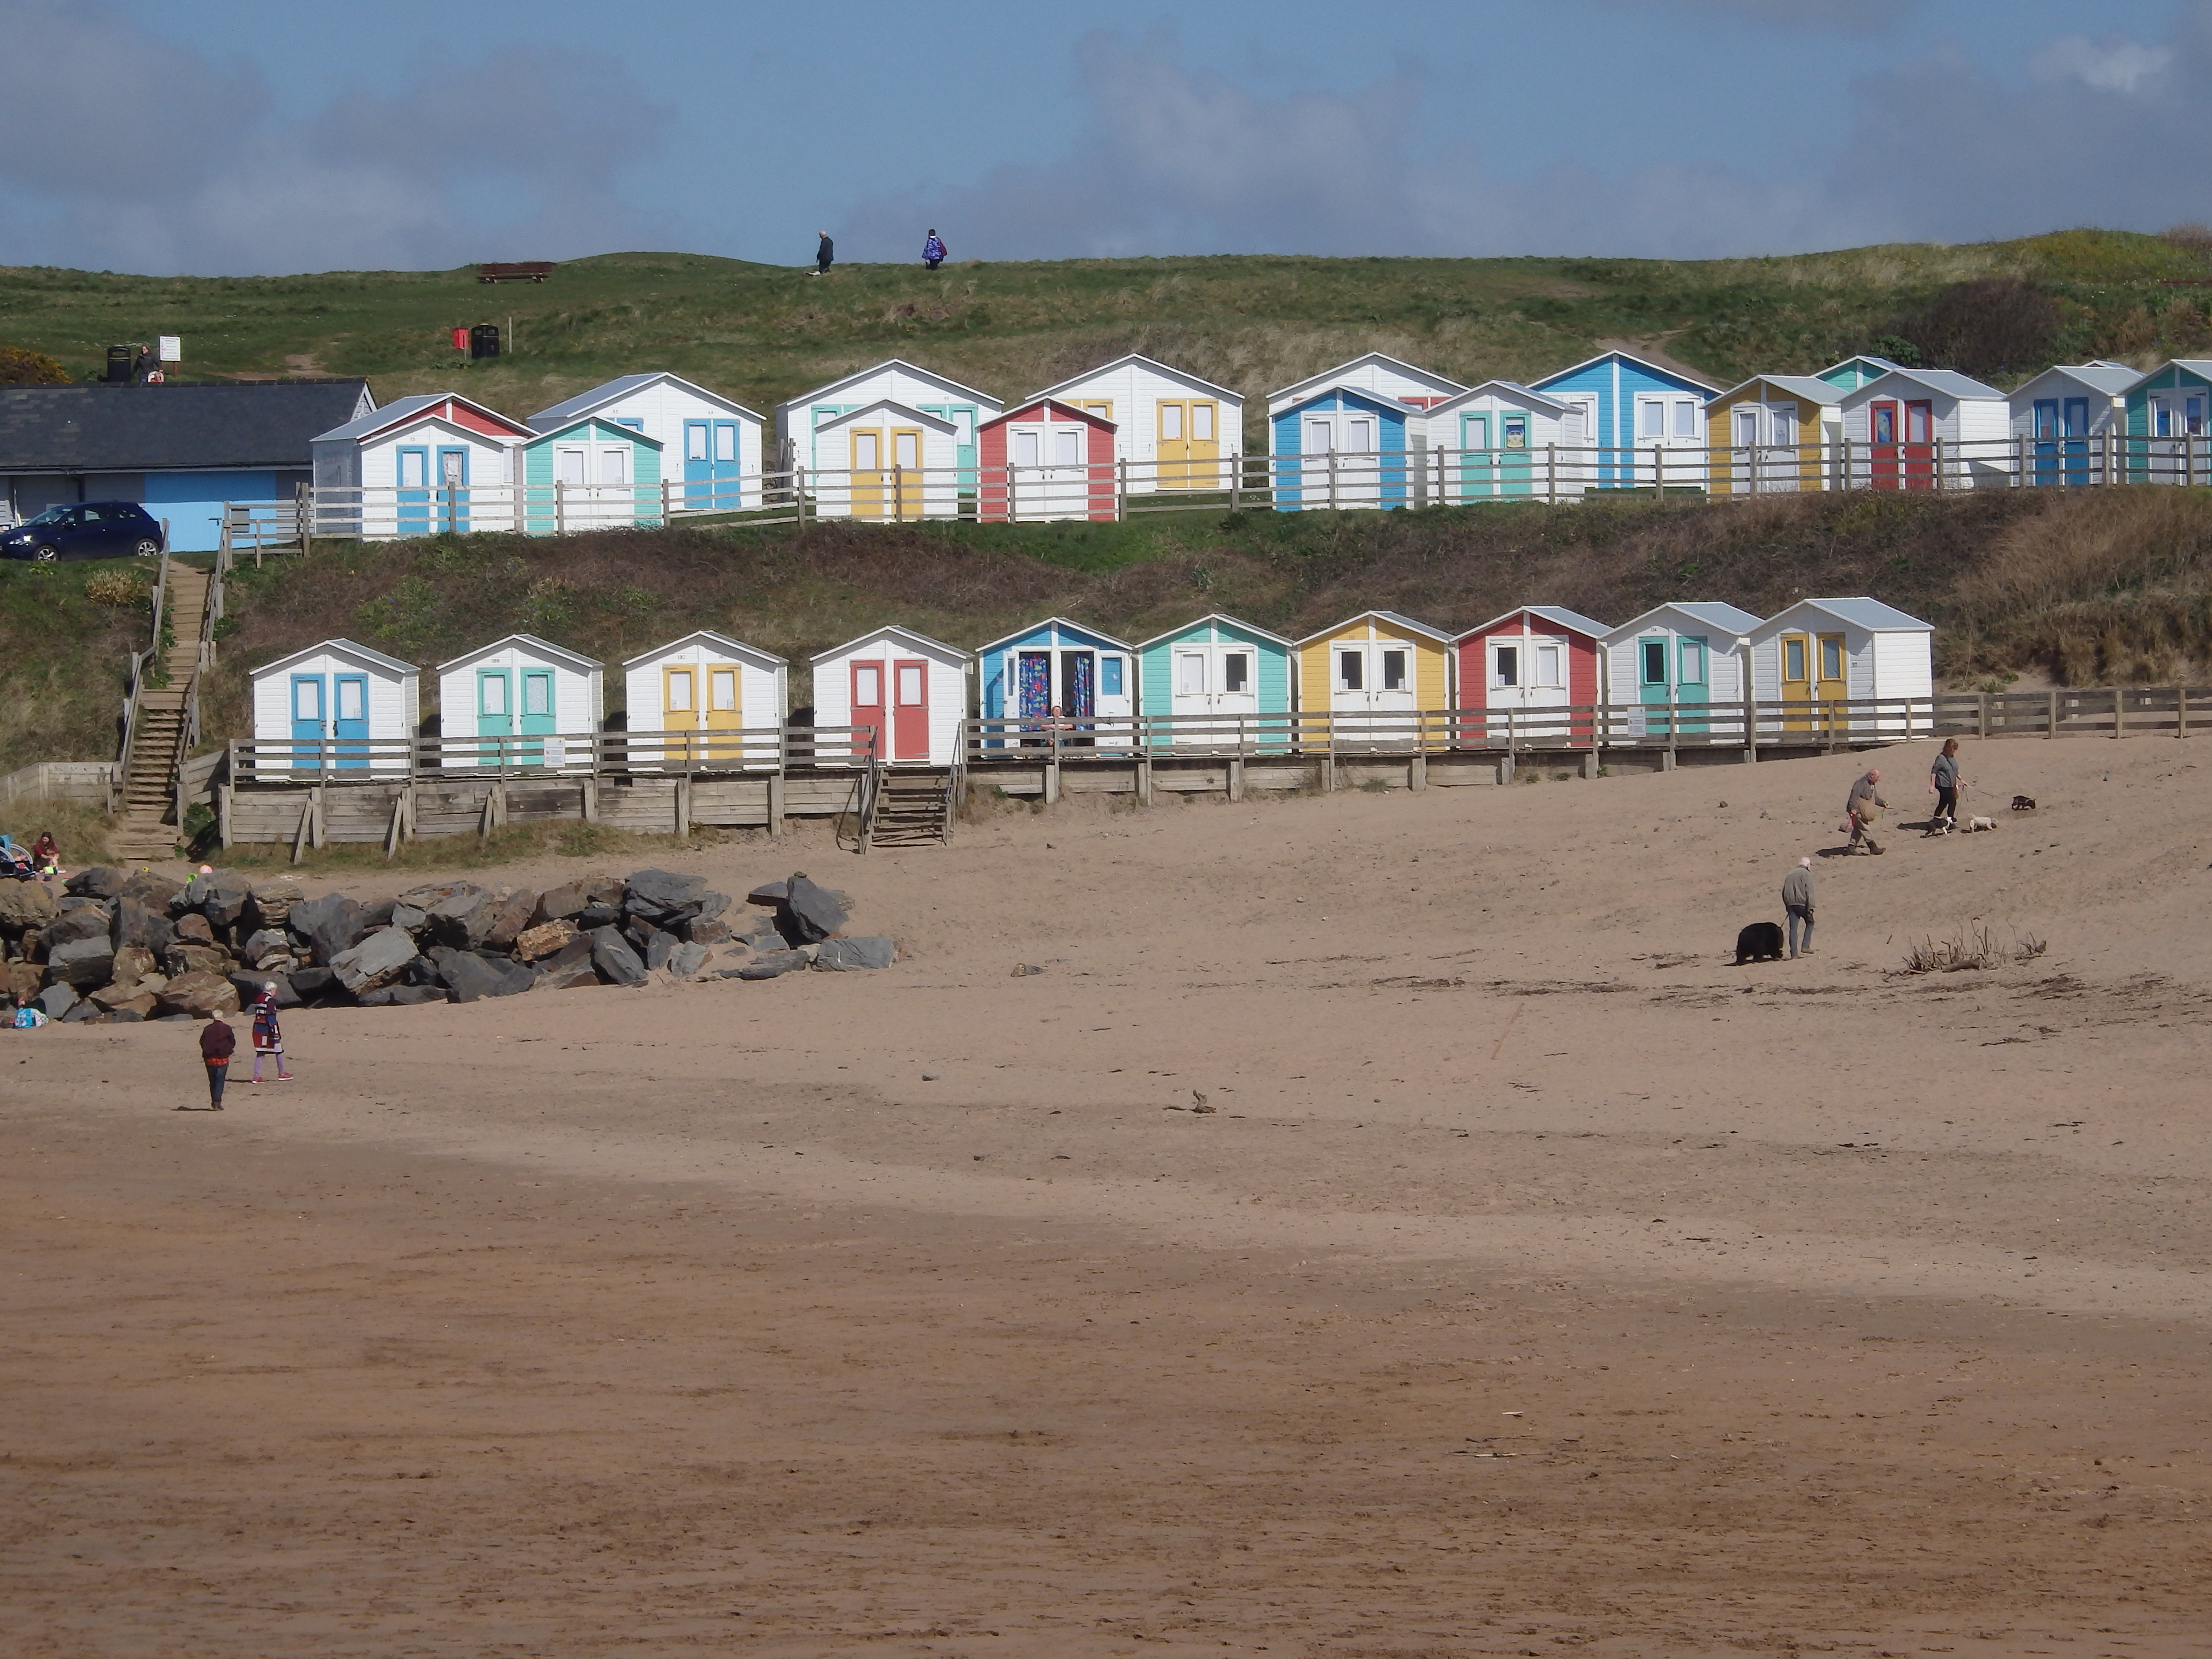 Summerleaze Beach and Huts close to Forda Farm Bed and Breakfast on the North Devon and Cornwall border.